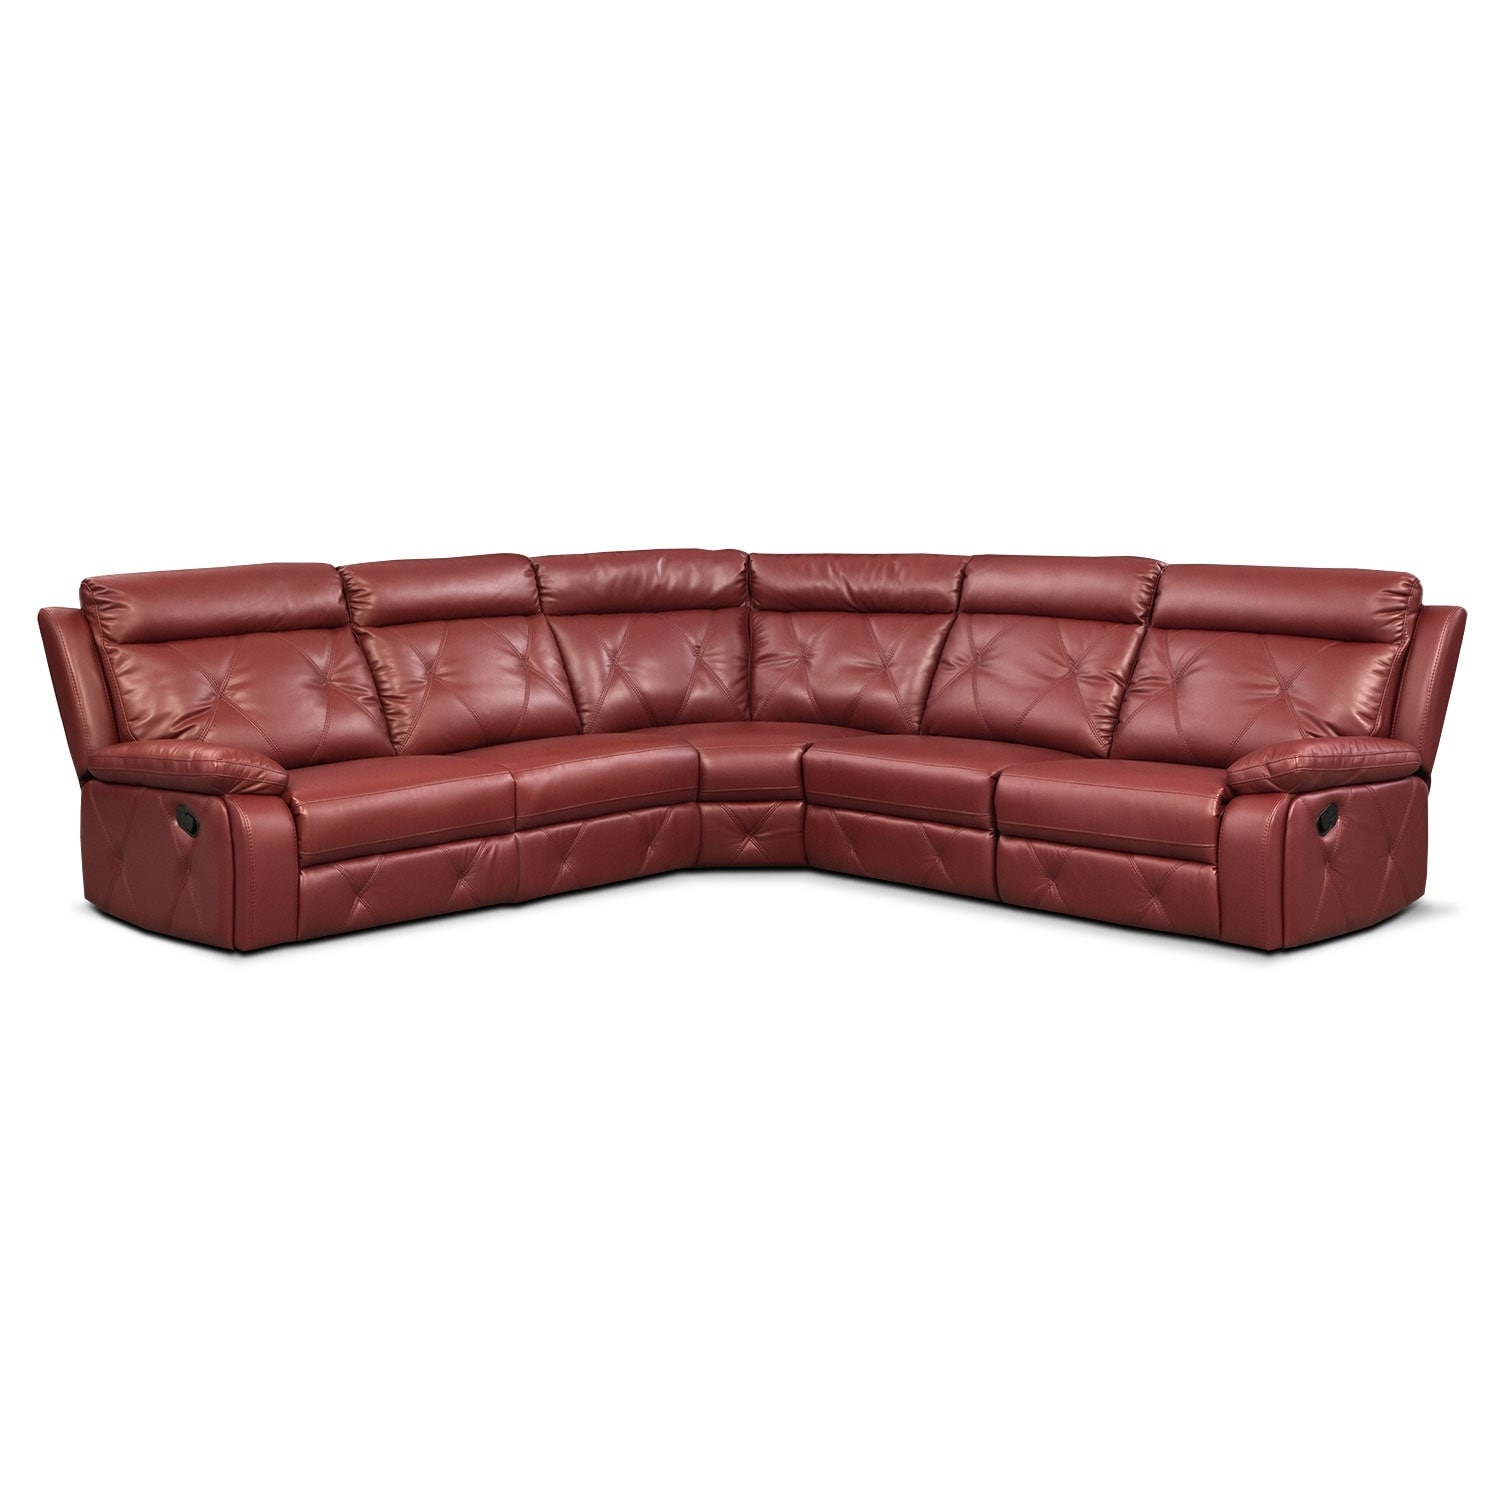 [Dante Red 5 Pc. Reclining Sectional w/ 3 Reclining Seats]